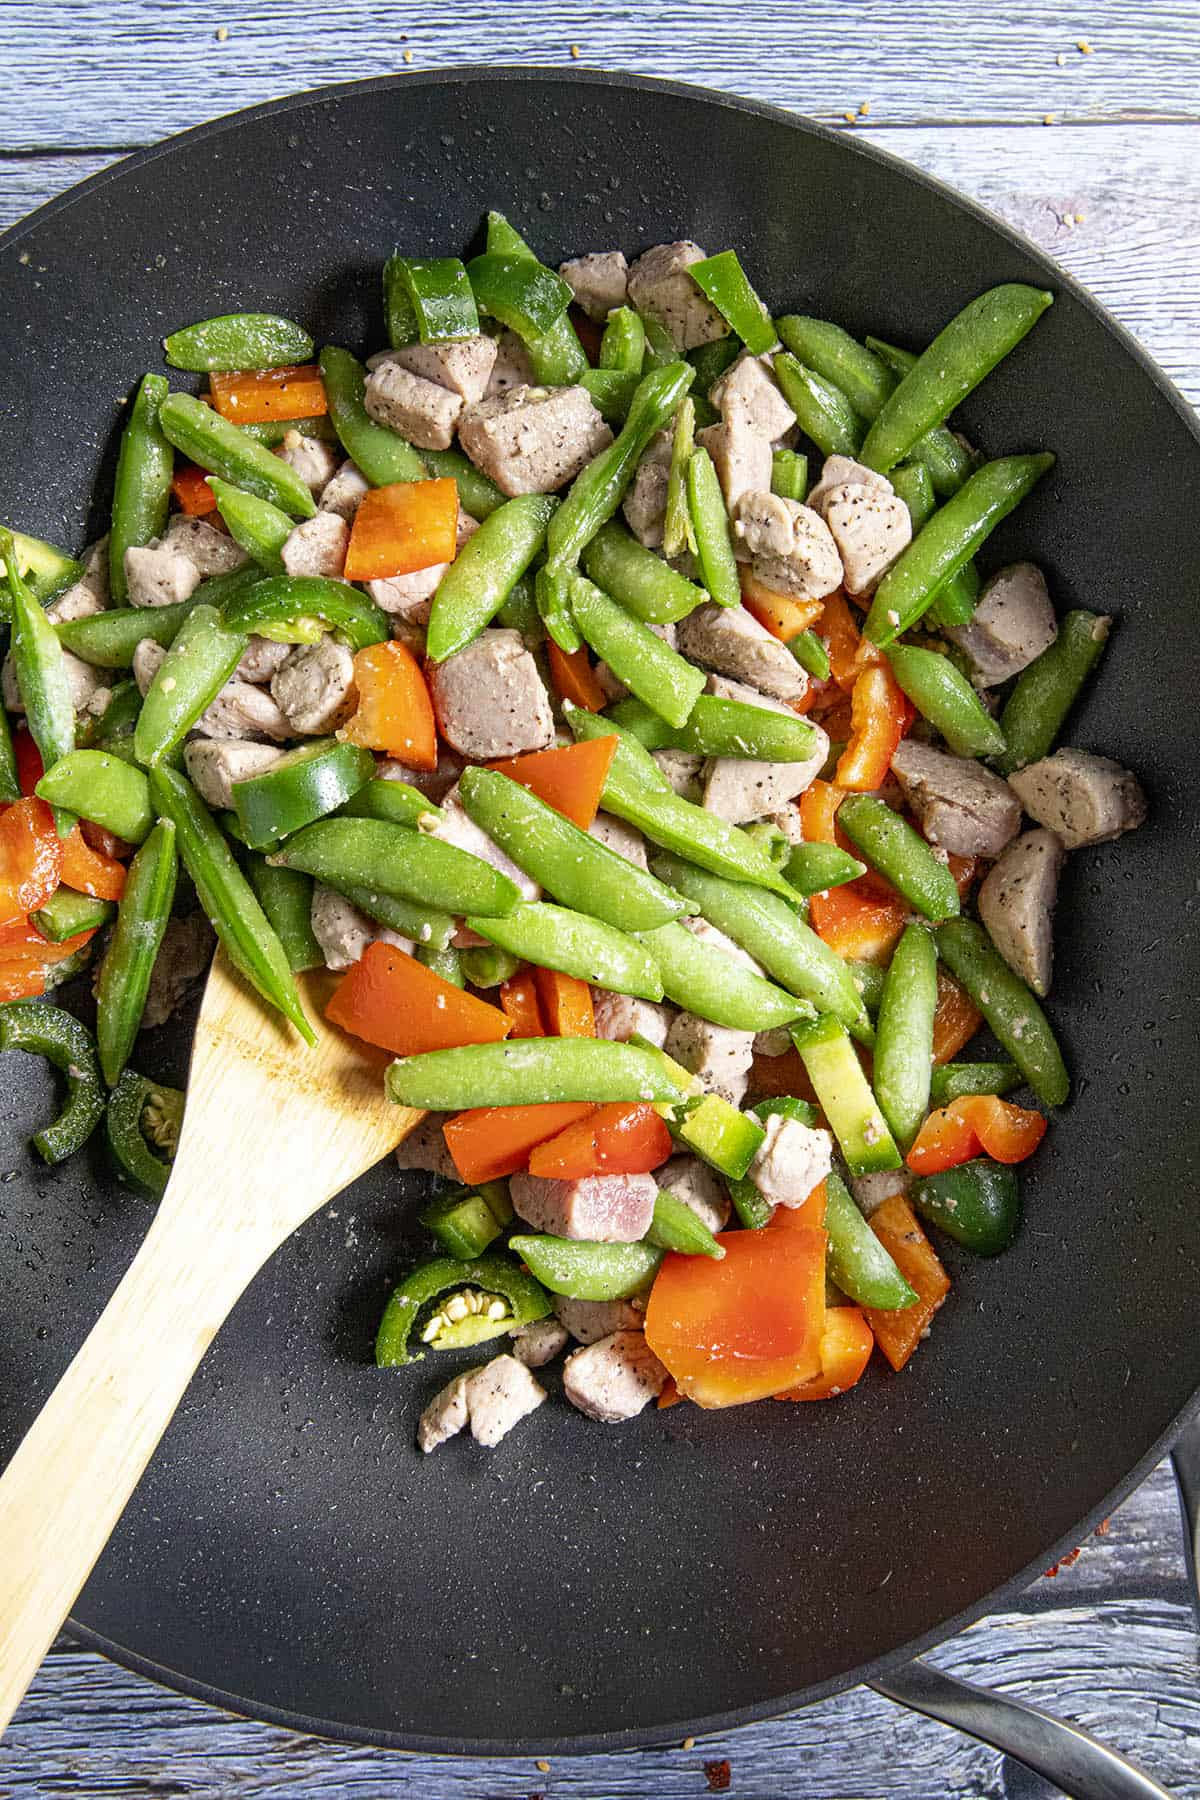 Stir frying the vegetables in a hot wok with the pork